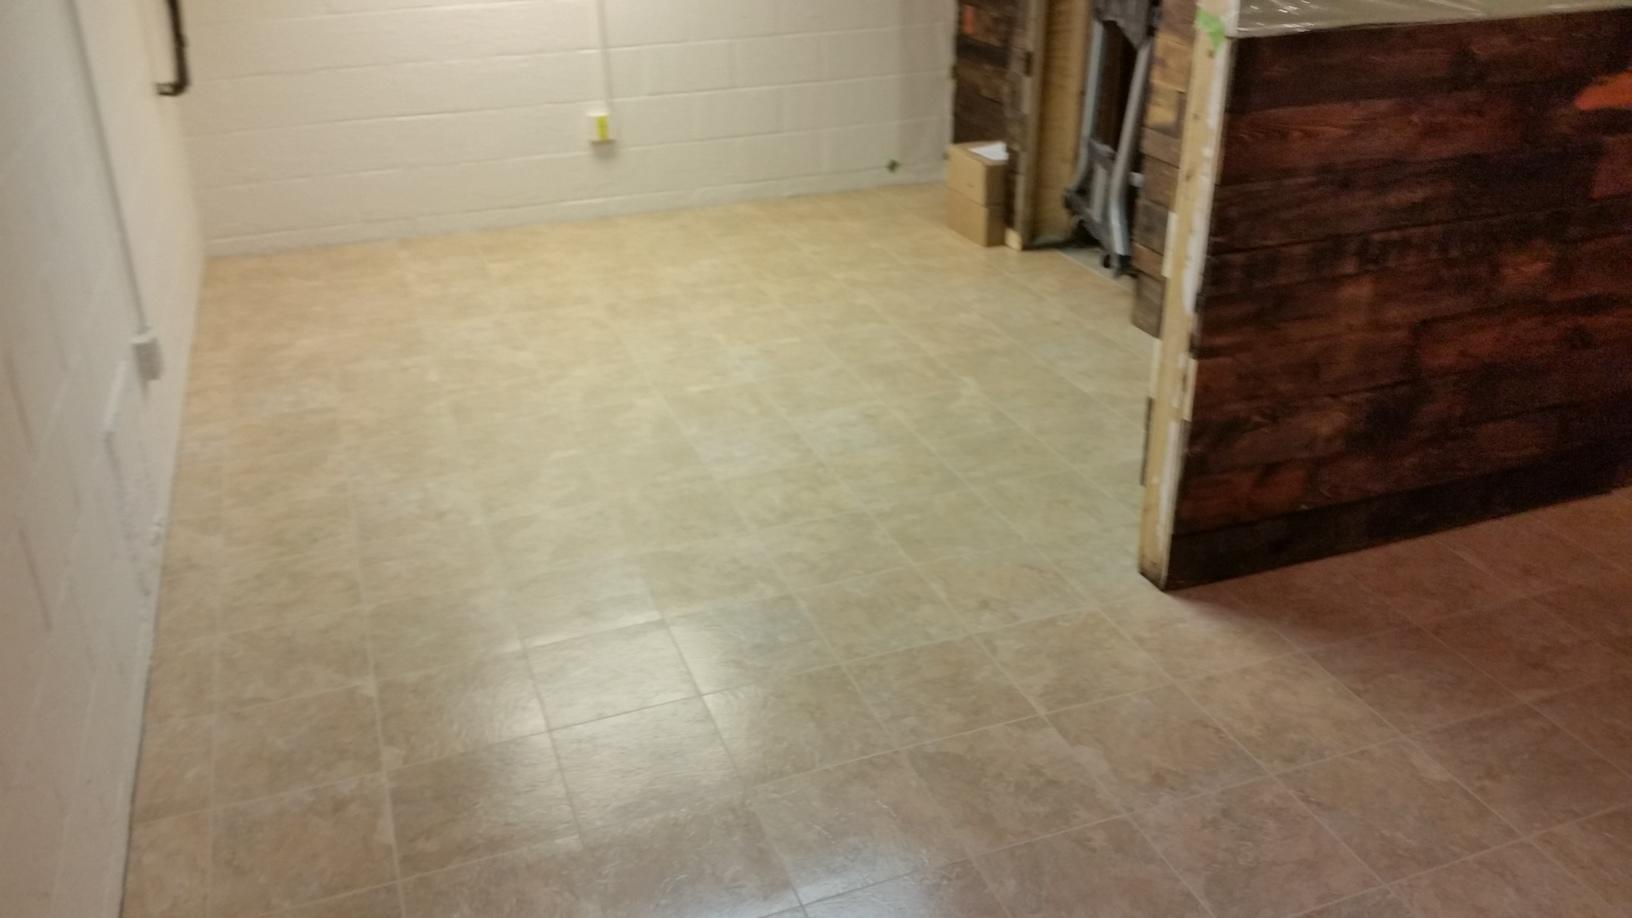 The full view of the room after the tiles are installed.